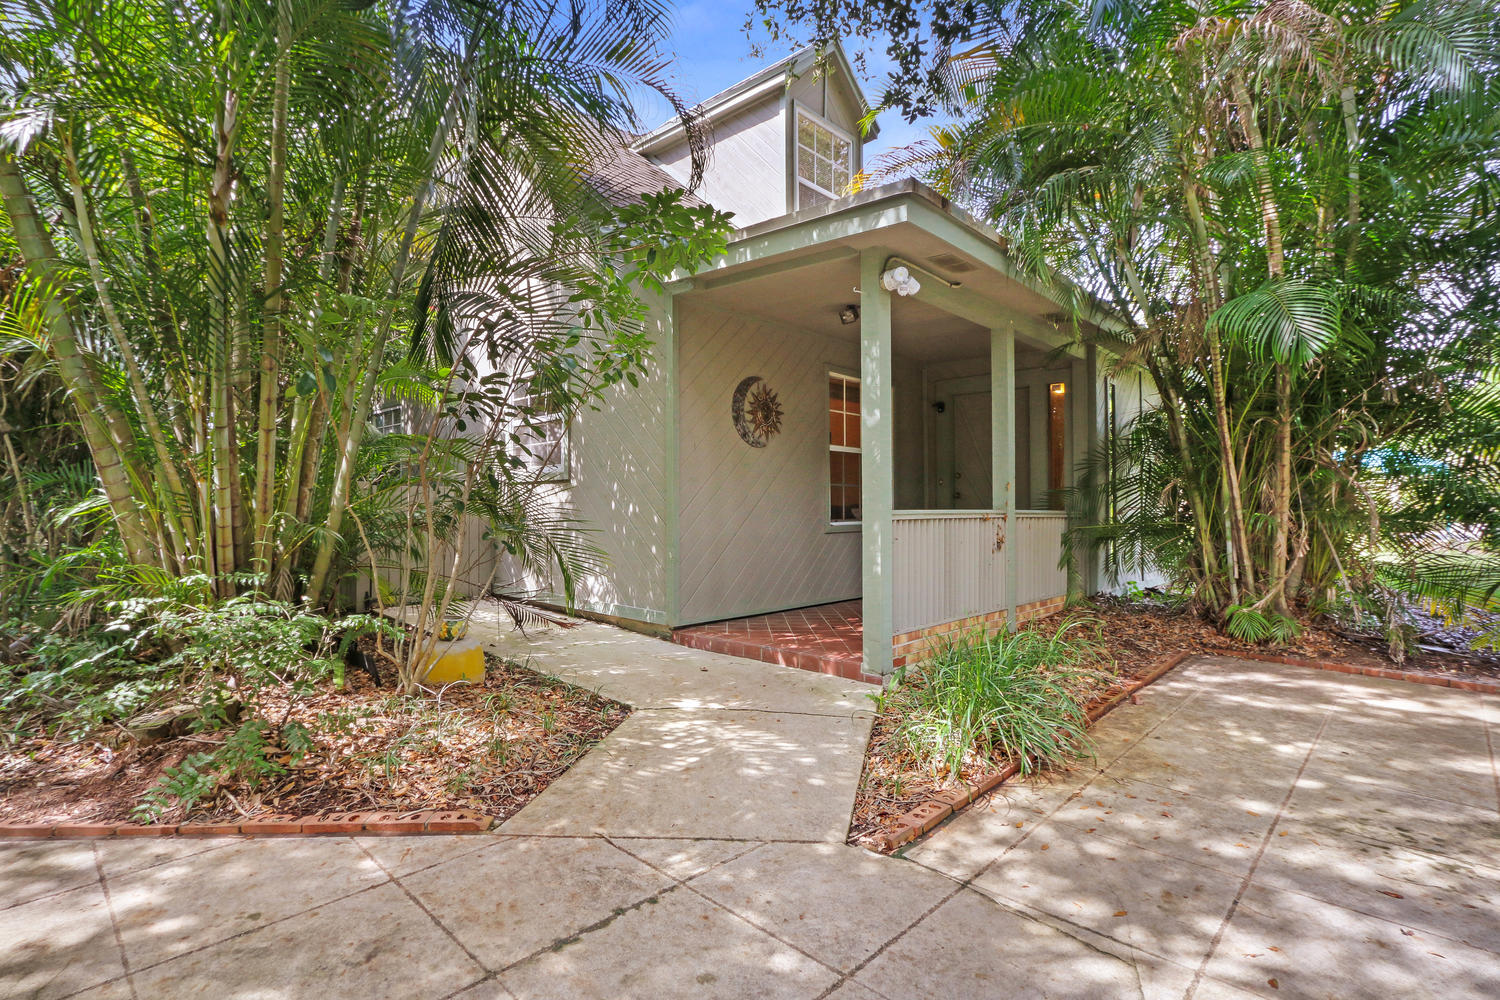 4894 Kay Street, Palm Beach Gardens, Florida 33418, 5 Bedrooms Bedrooms, ,3 BathroomsBathrooms,Single Family,For Sale,Kay,RX-10476571